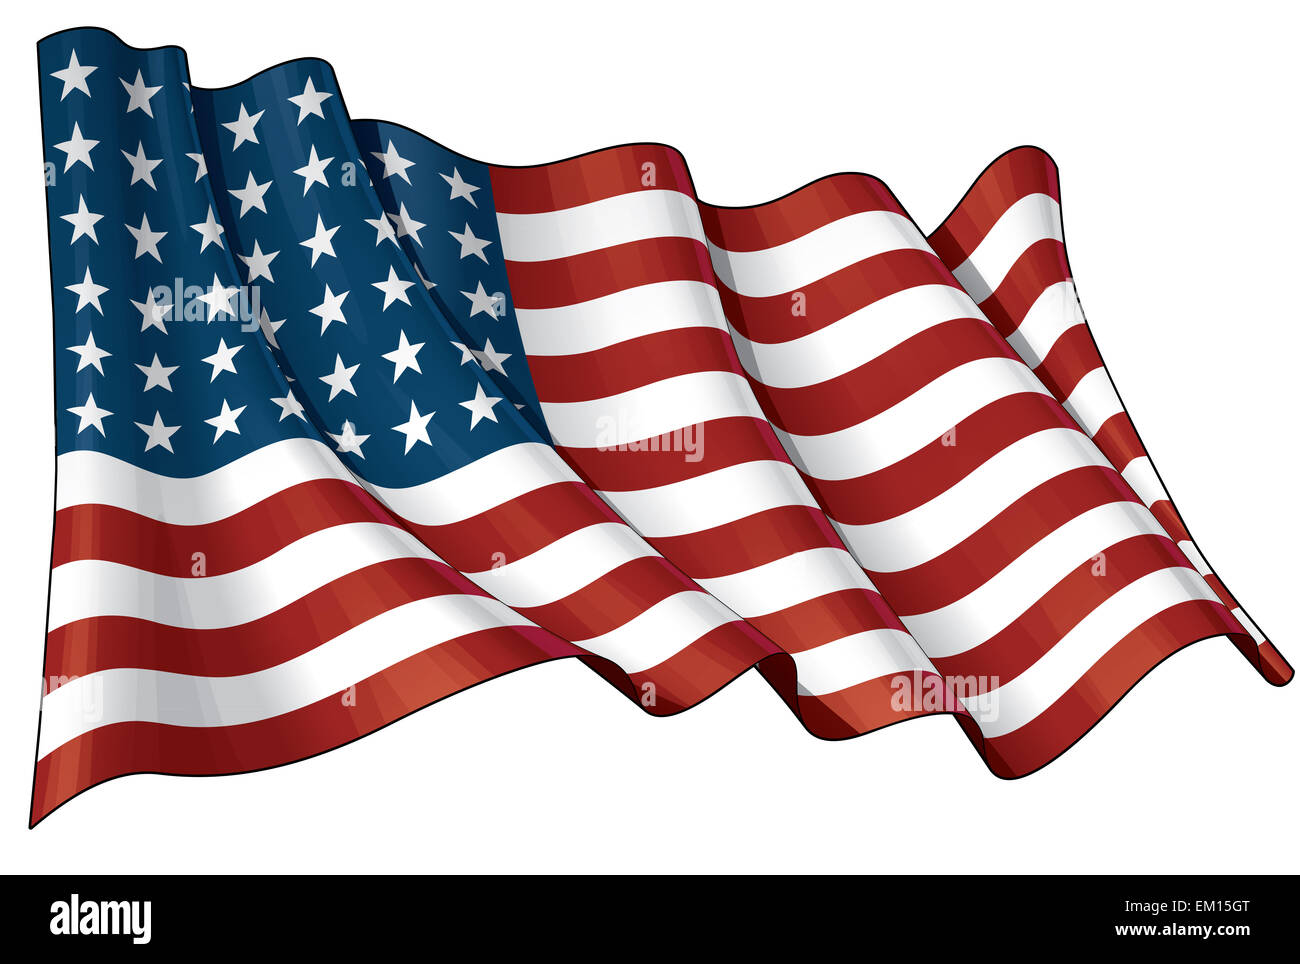 US Flag WWI-WWII (48 stars) - Stock Image